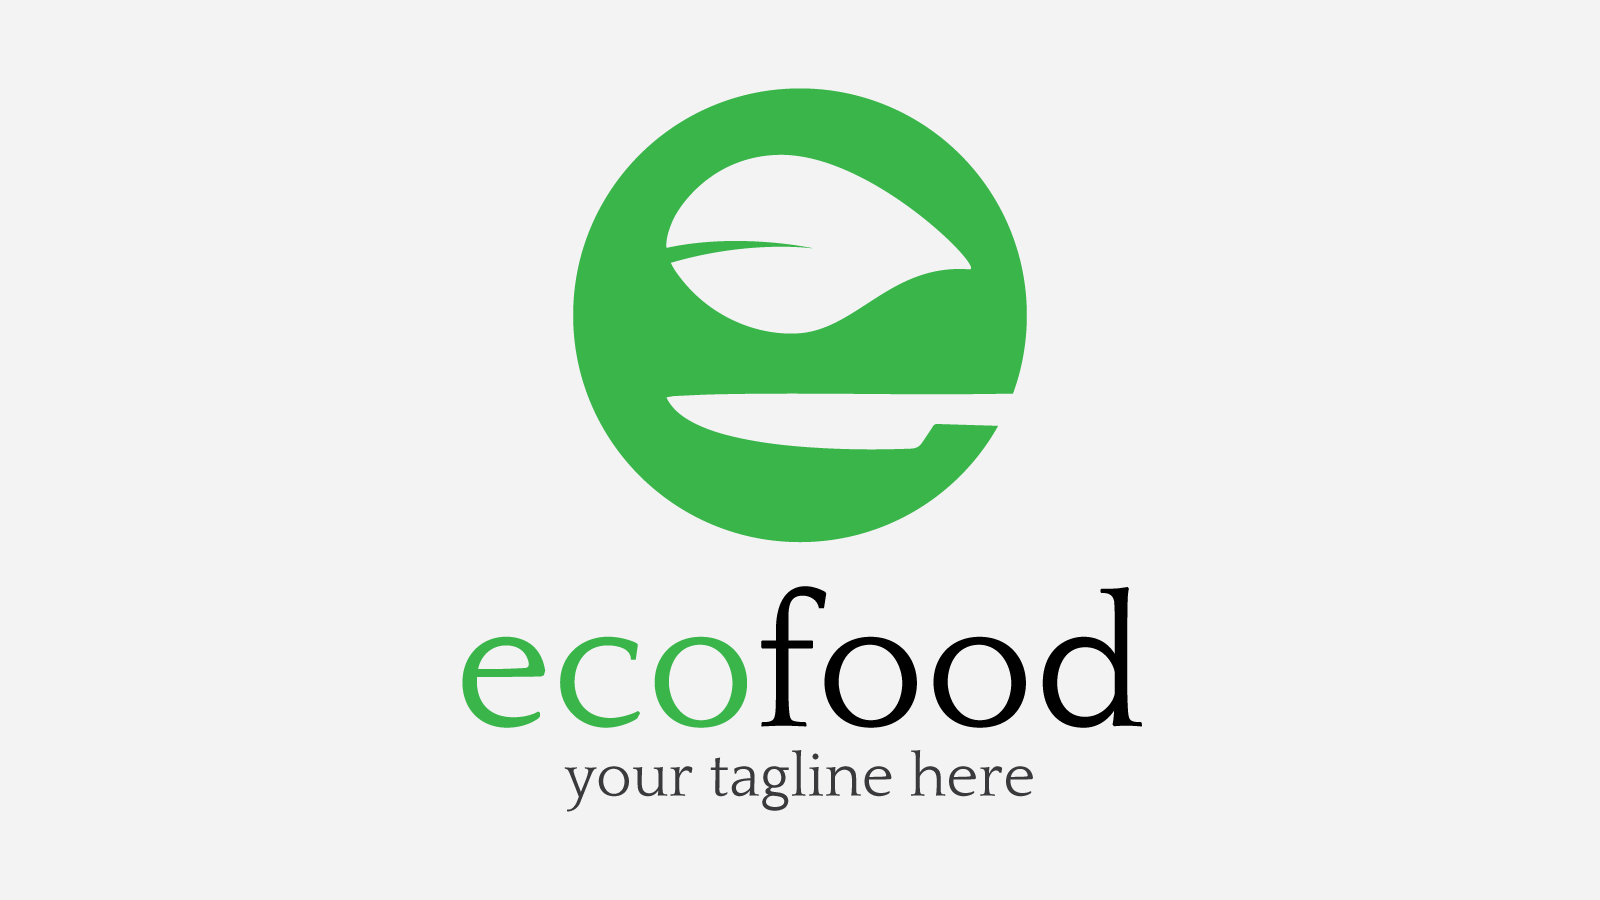 Ecofood free logo design zfreegraphic free vector logo for Design a company logo free templates